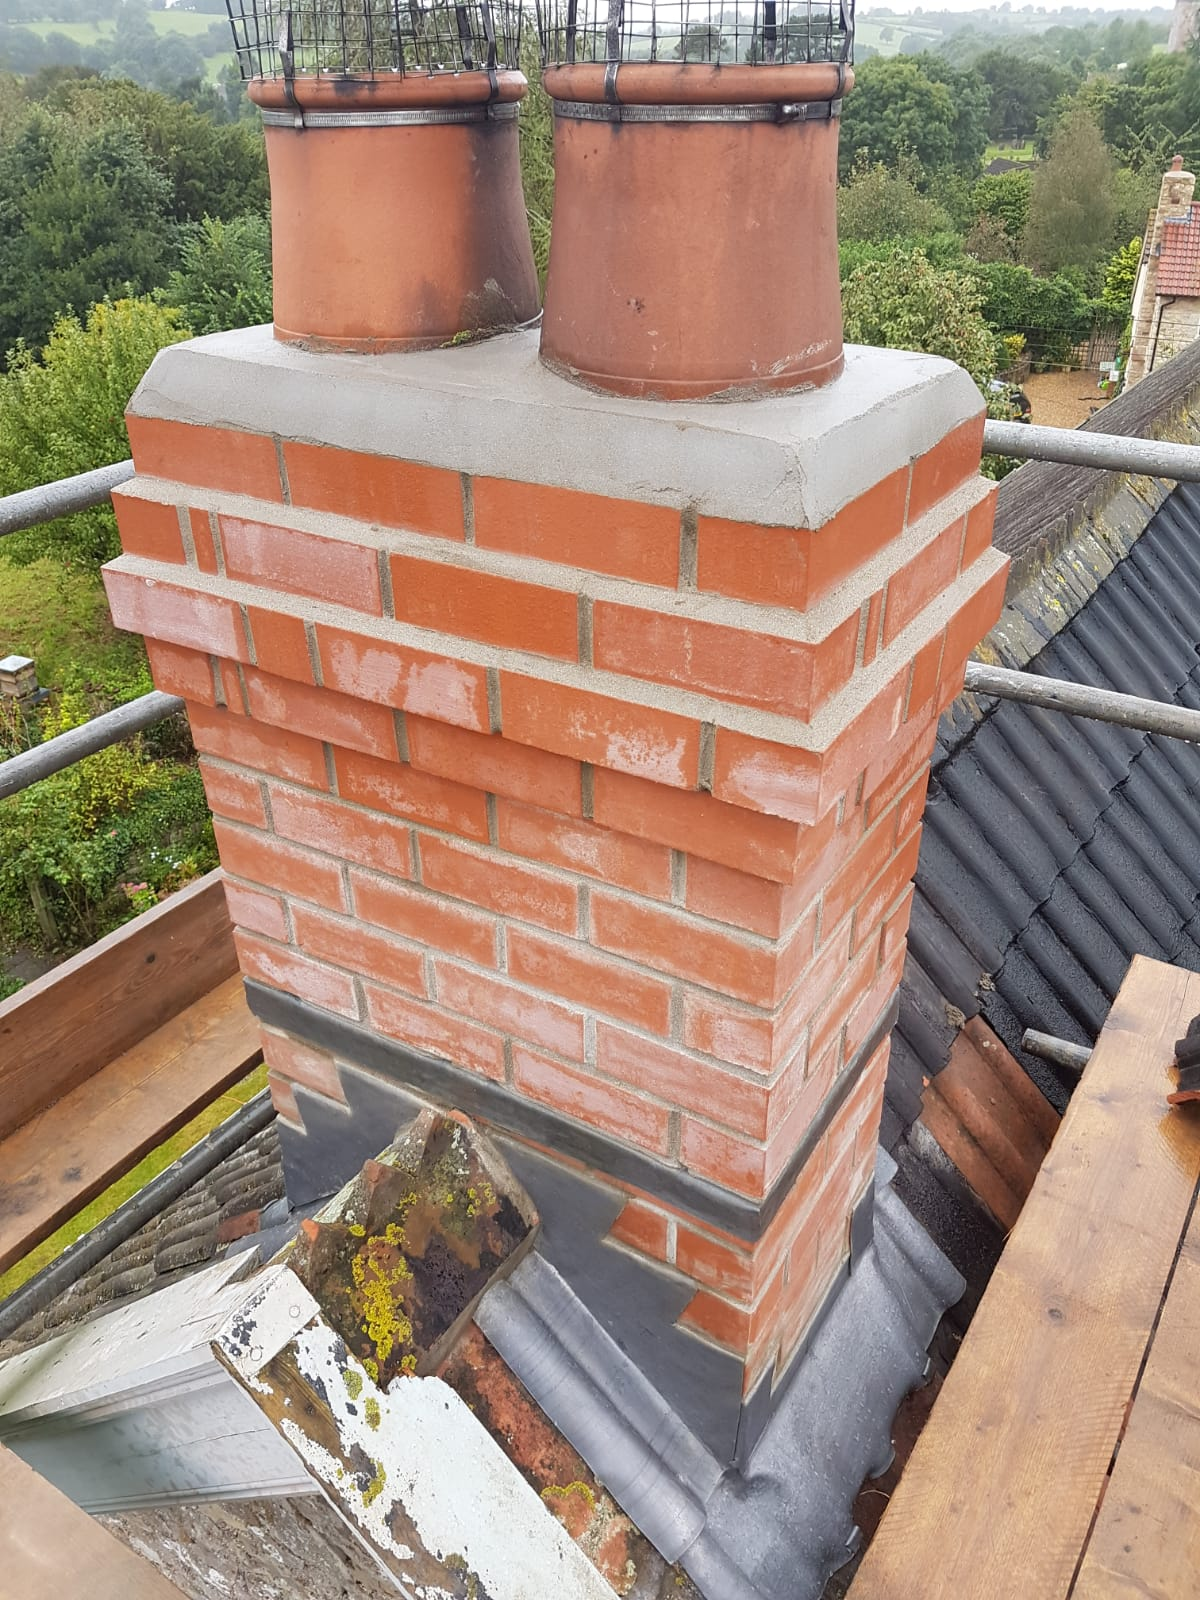 The chimney once Vears Roofing had completed works